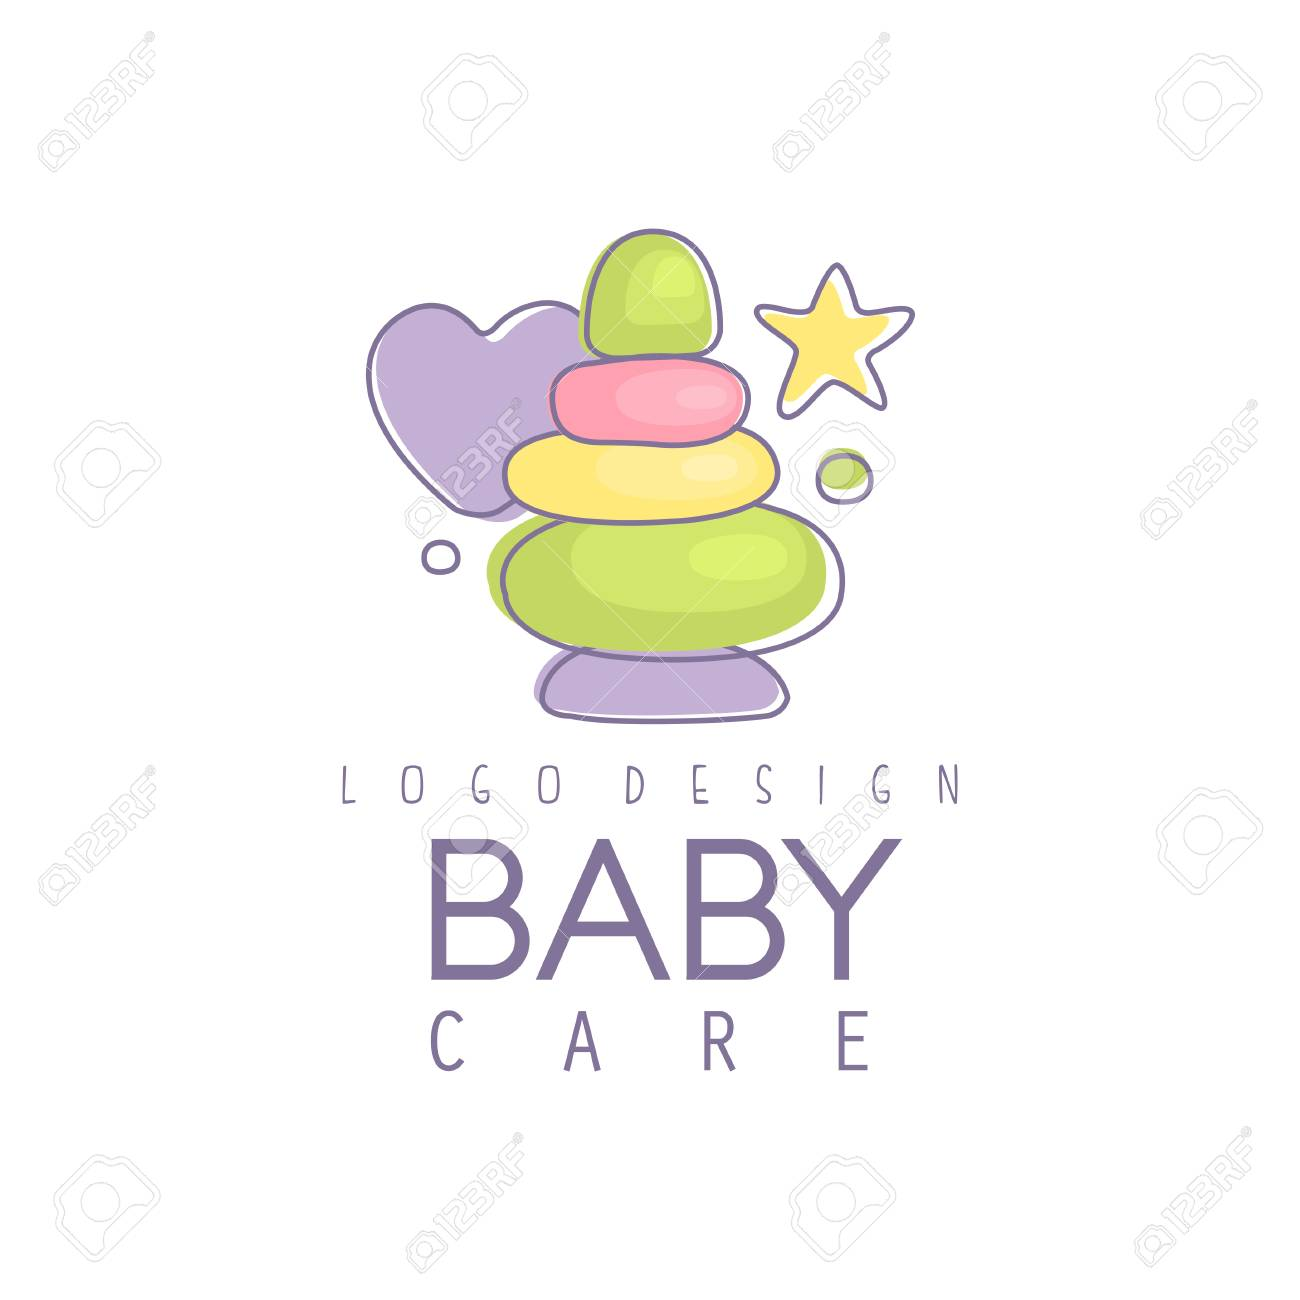 Baby Care Logo Design Emblem With Colorful Pyramid Toy Label